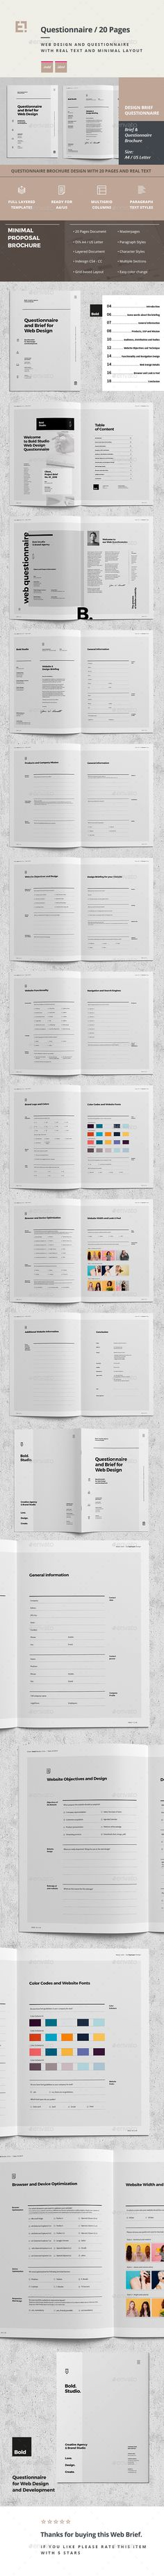 Minimal and Professional Questionnaire Brochure Template InDesign INDD